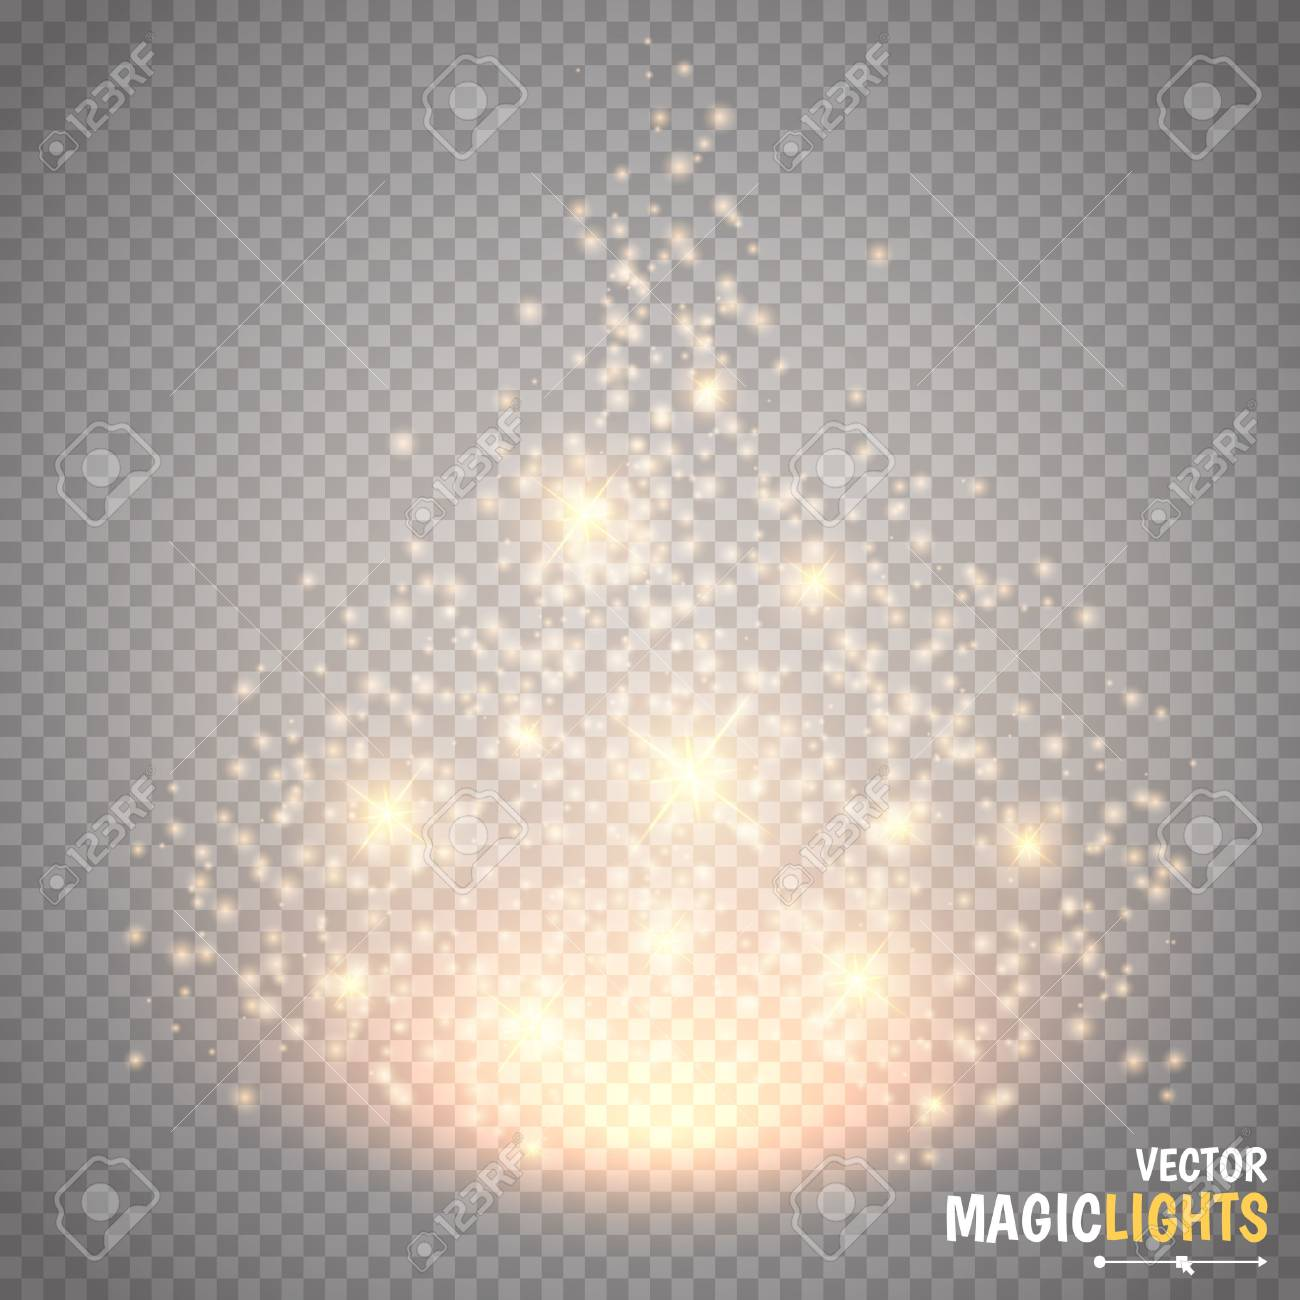 Magic light vector effect. Glow special effect light, flare, star and burst. Isolated spark. Vector illustration - 55755586